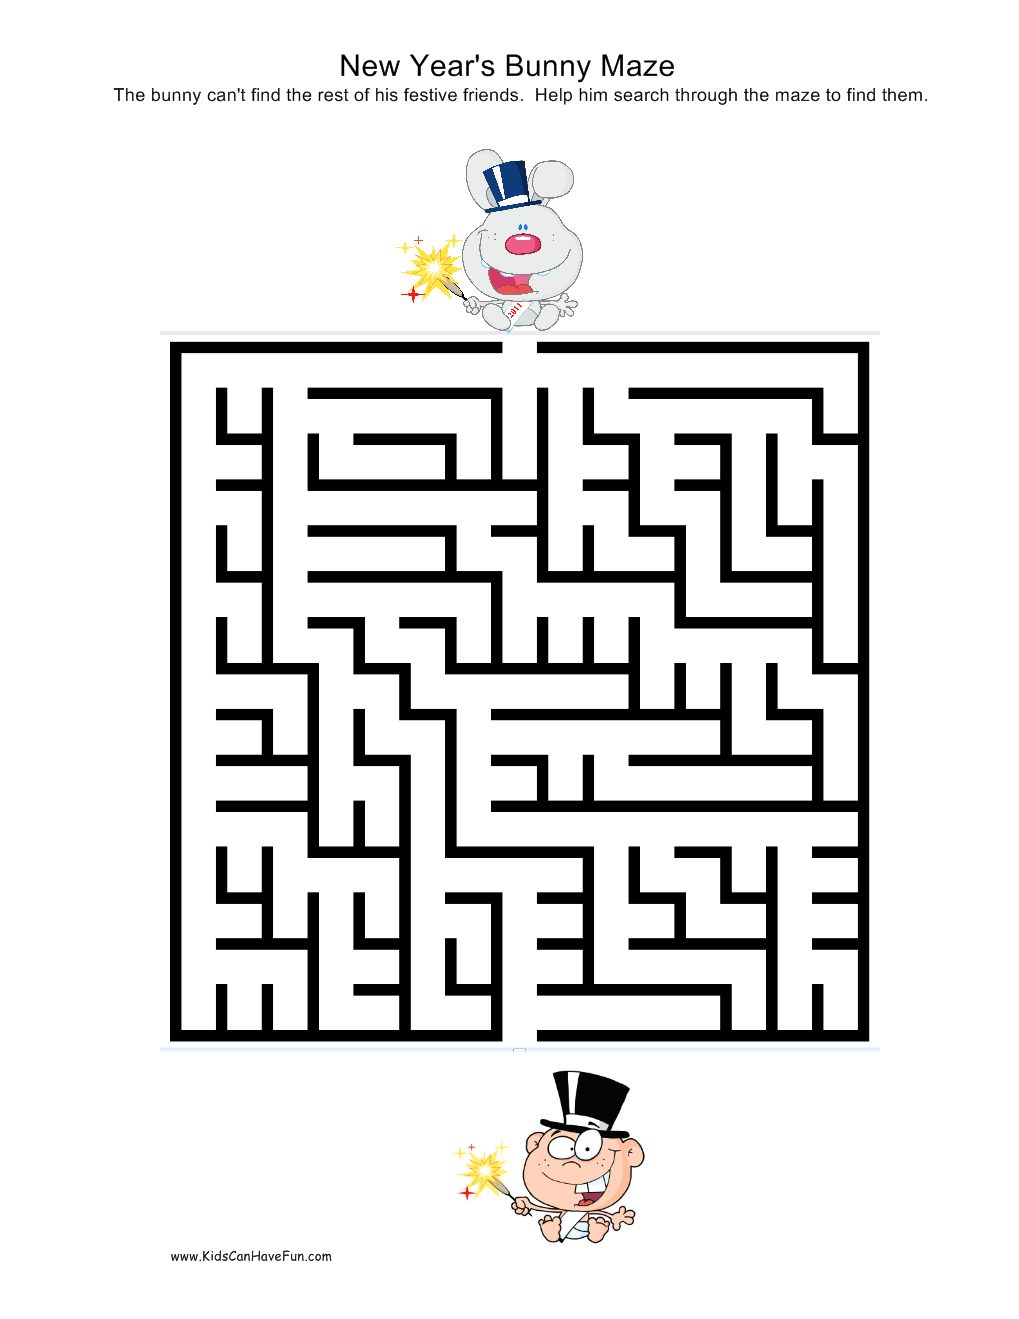 New Years Bunny Maze | New Years | Pinterest | Maze and Bunny